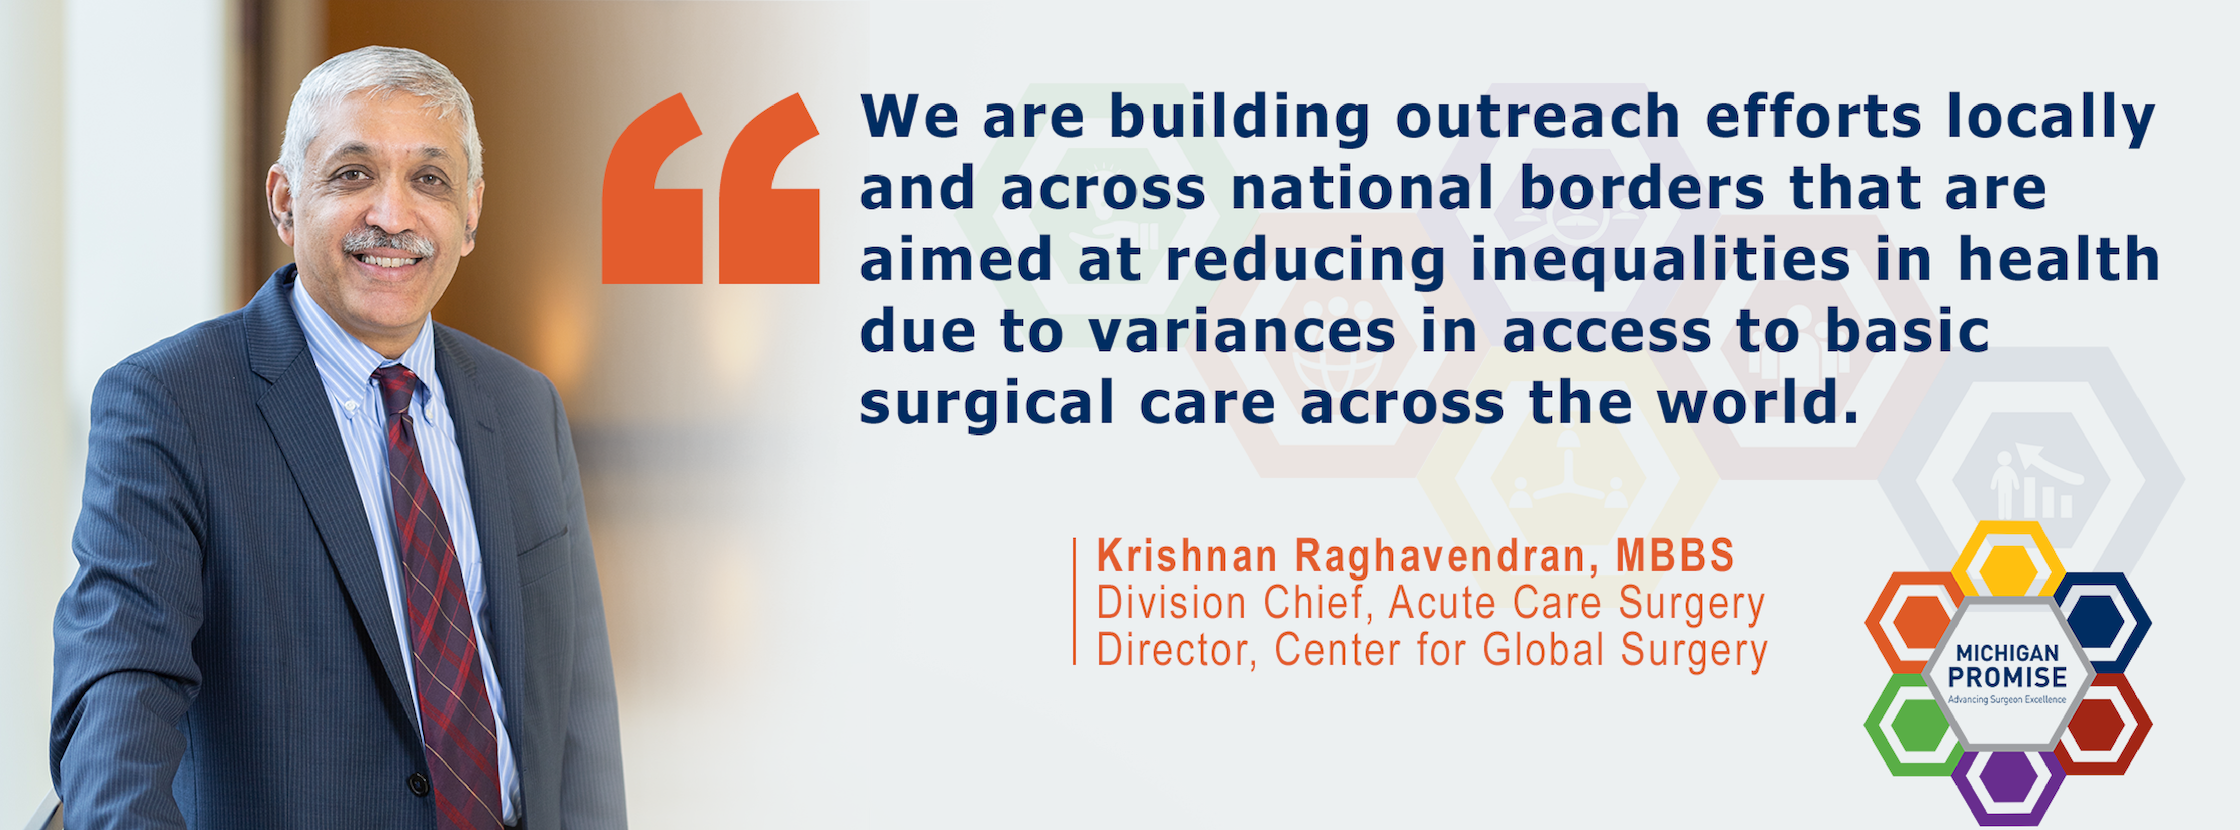 """We are building outreach efforts locally and across national borders that are aimed at reducing inequalities in health due to variances in access to basic surgical care across the world."" - Krishnan Raghavendran, MBBS"